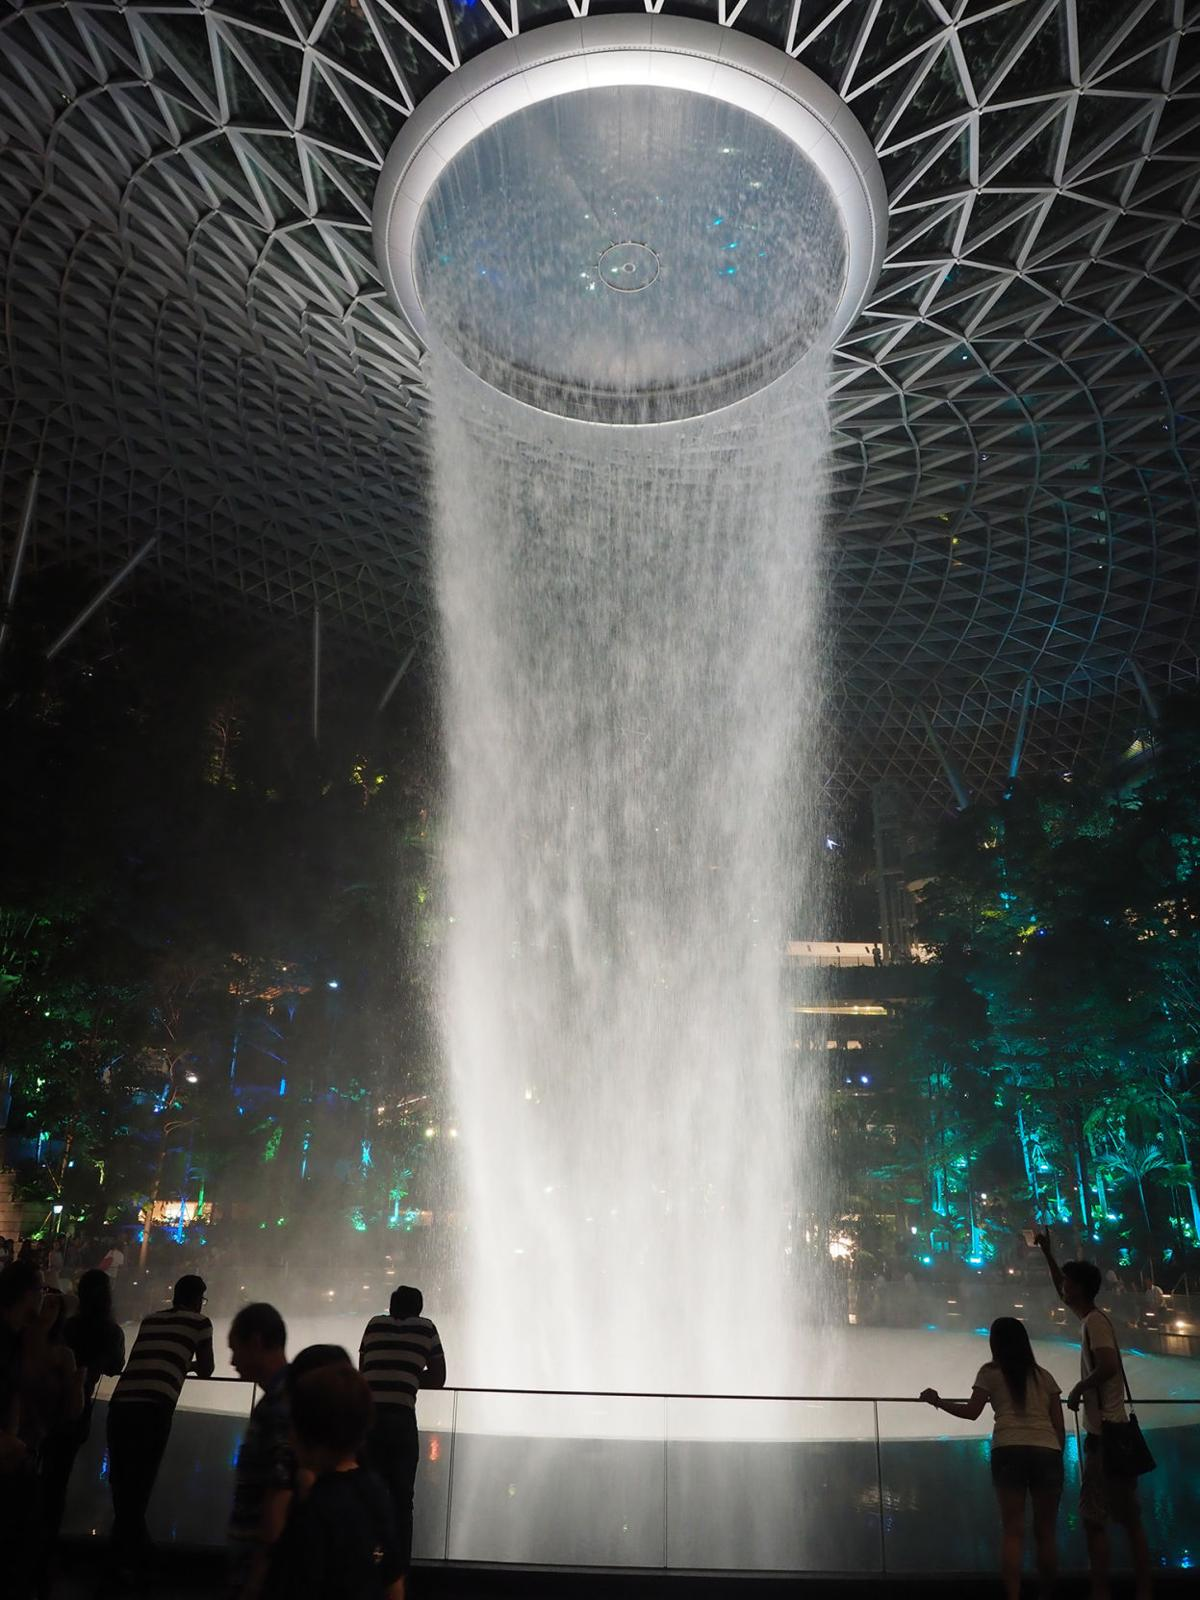 At Singapore's Changi Airport the HSBC Rain Vortex recirculates 135,000 gallons of reclaimed rainwater.